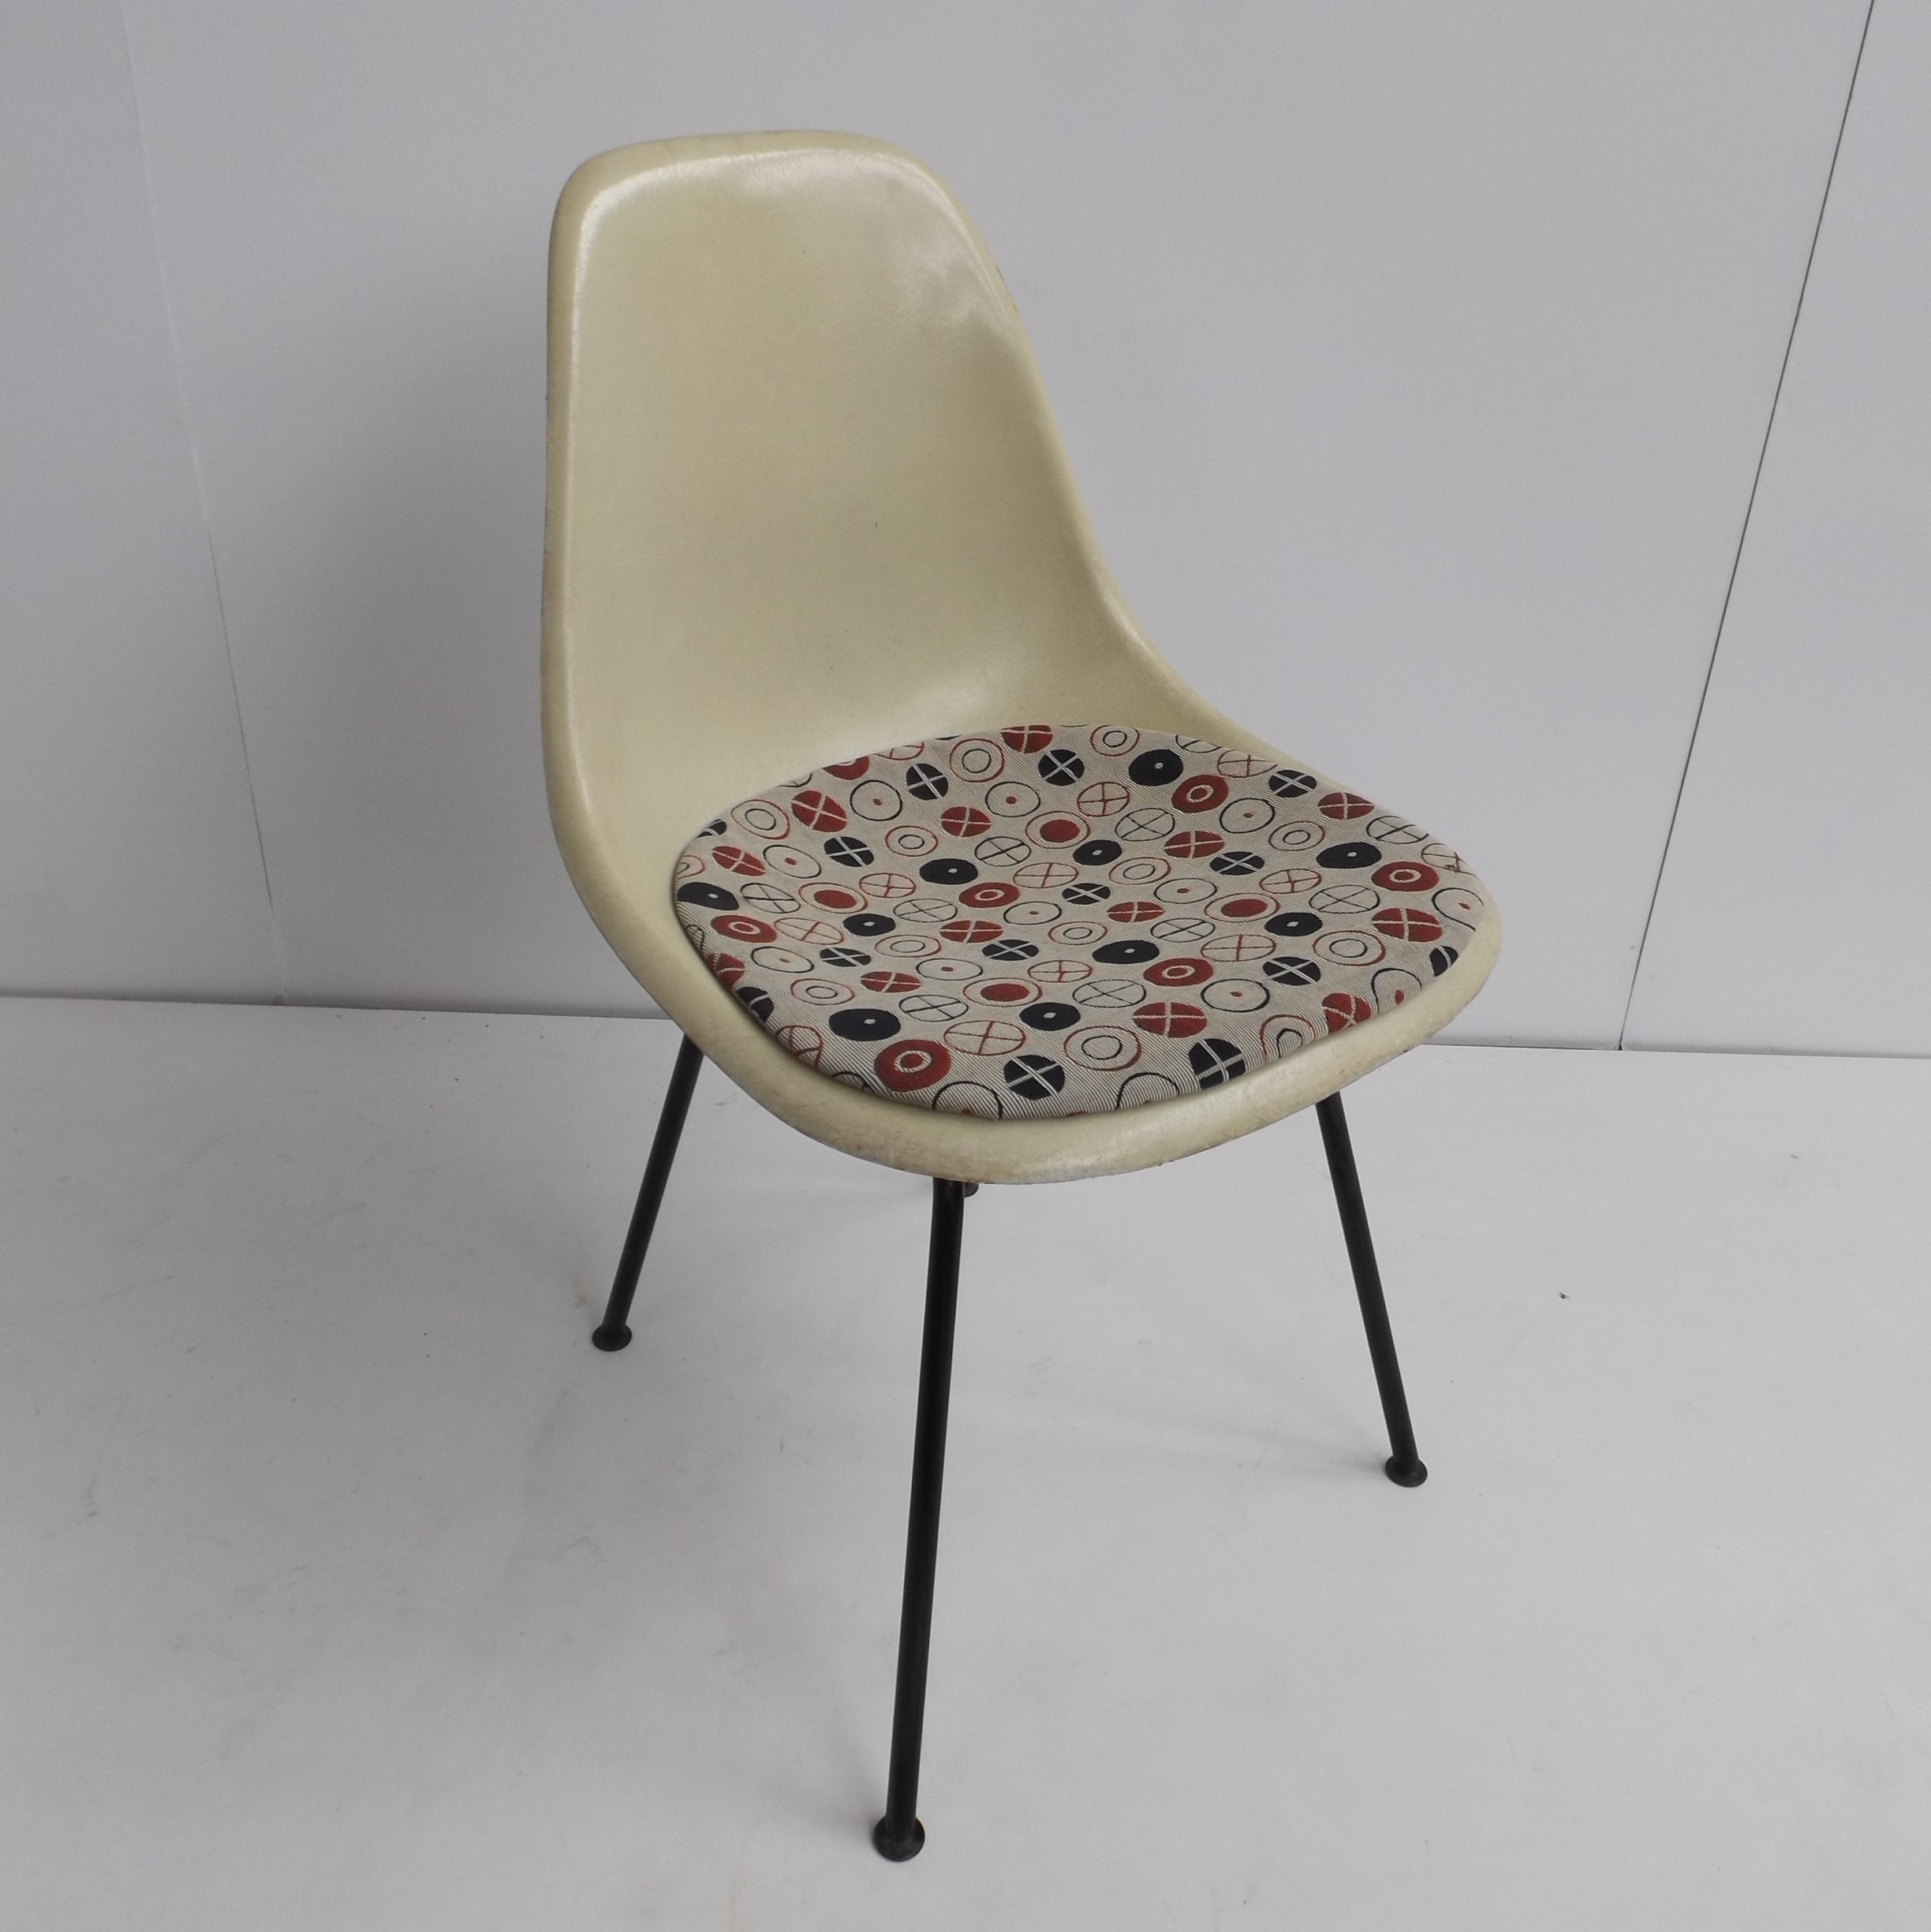 DSX Fiberglass Dinner Chair By Charles U0026 Ray Eames For Herman Miller, 1960s